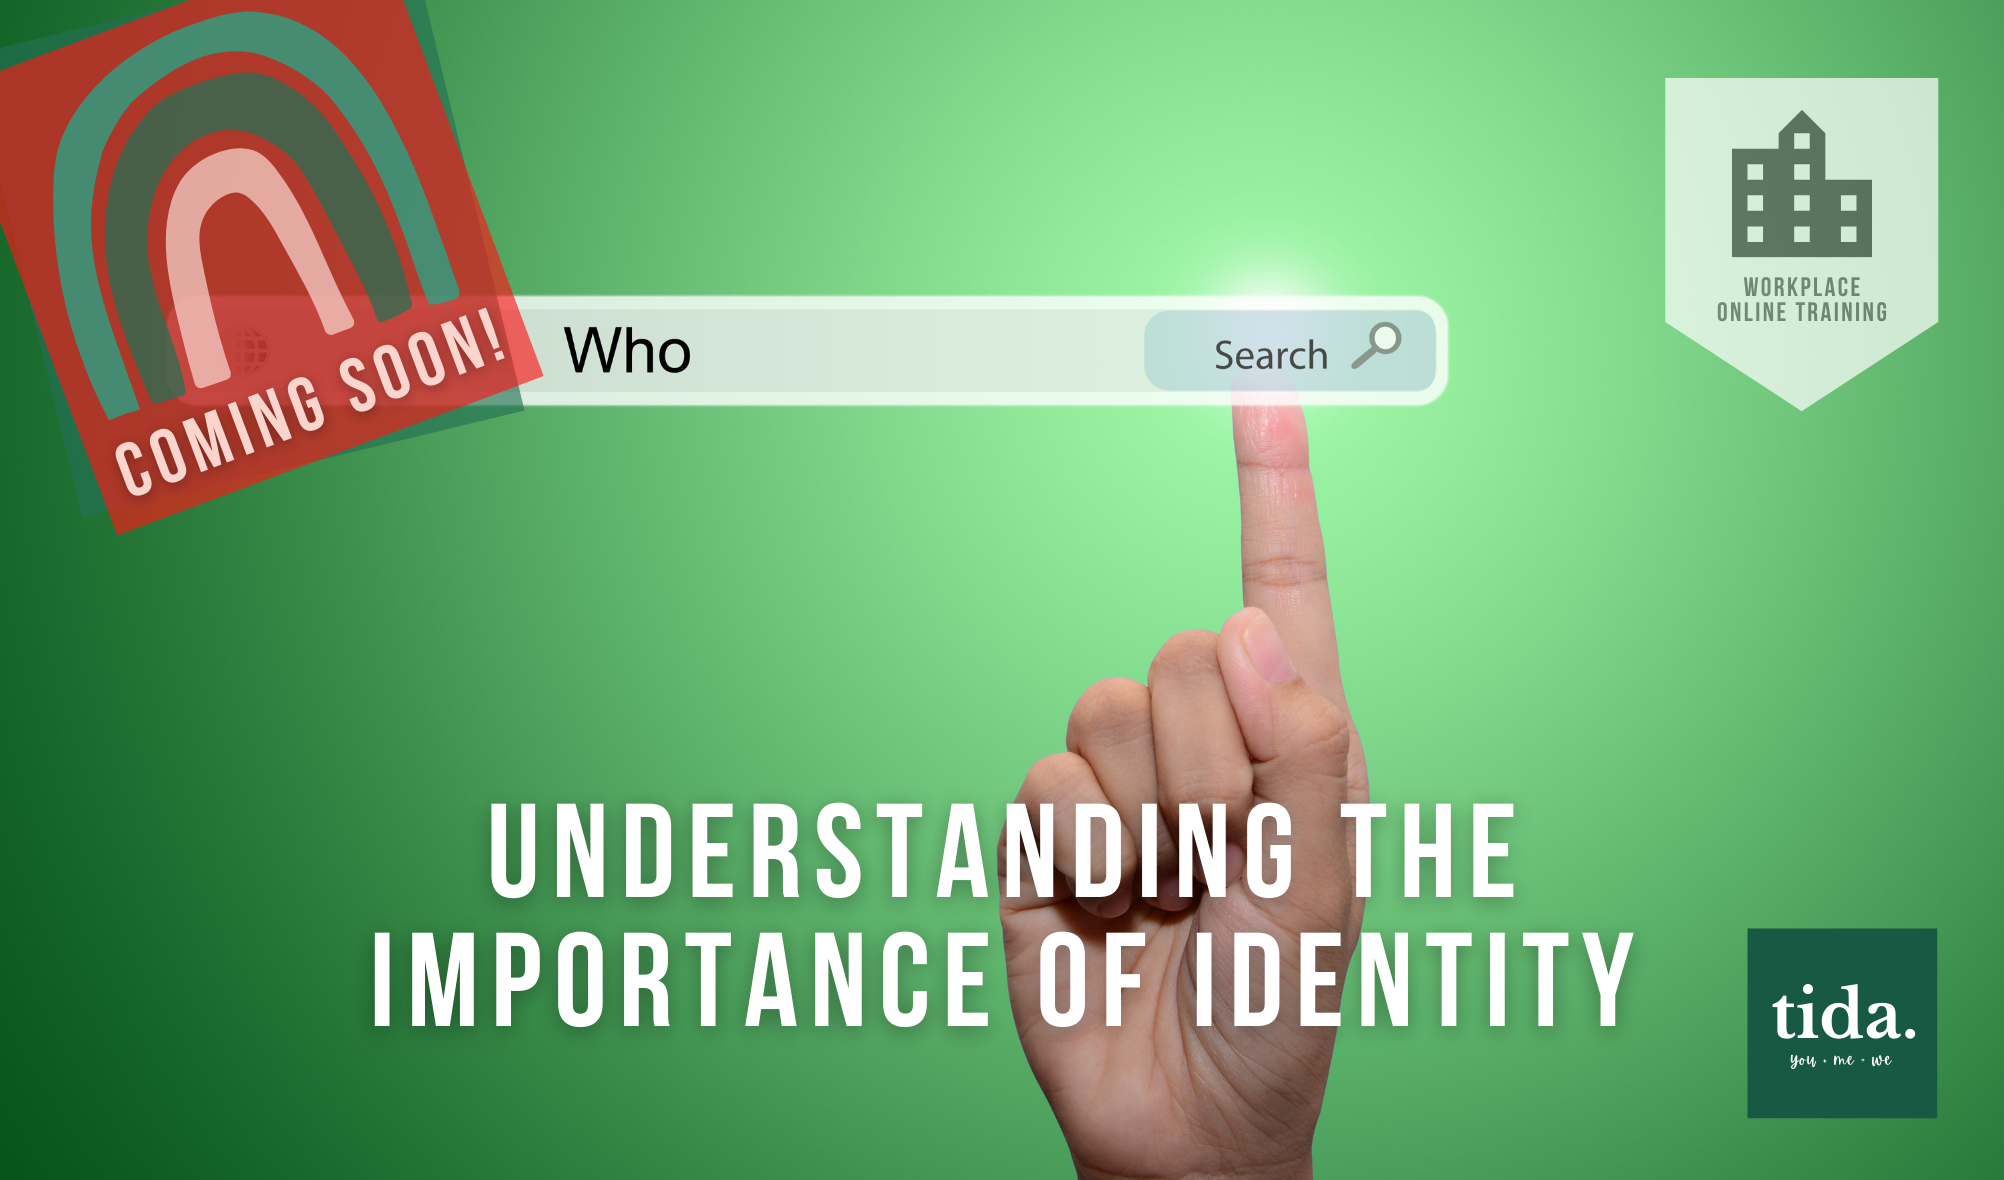 Importance of Identity online course logo